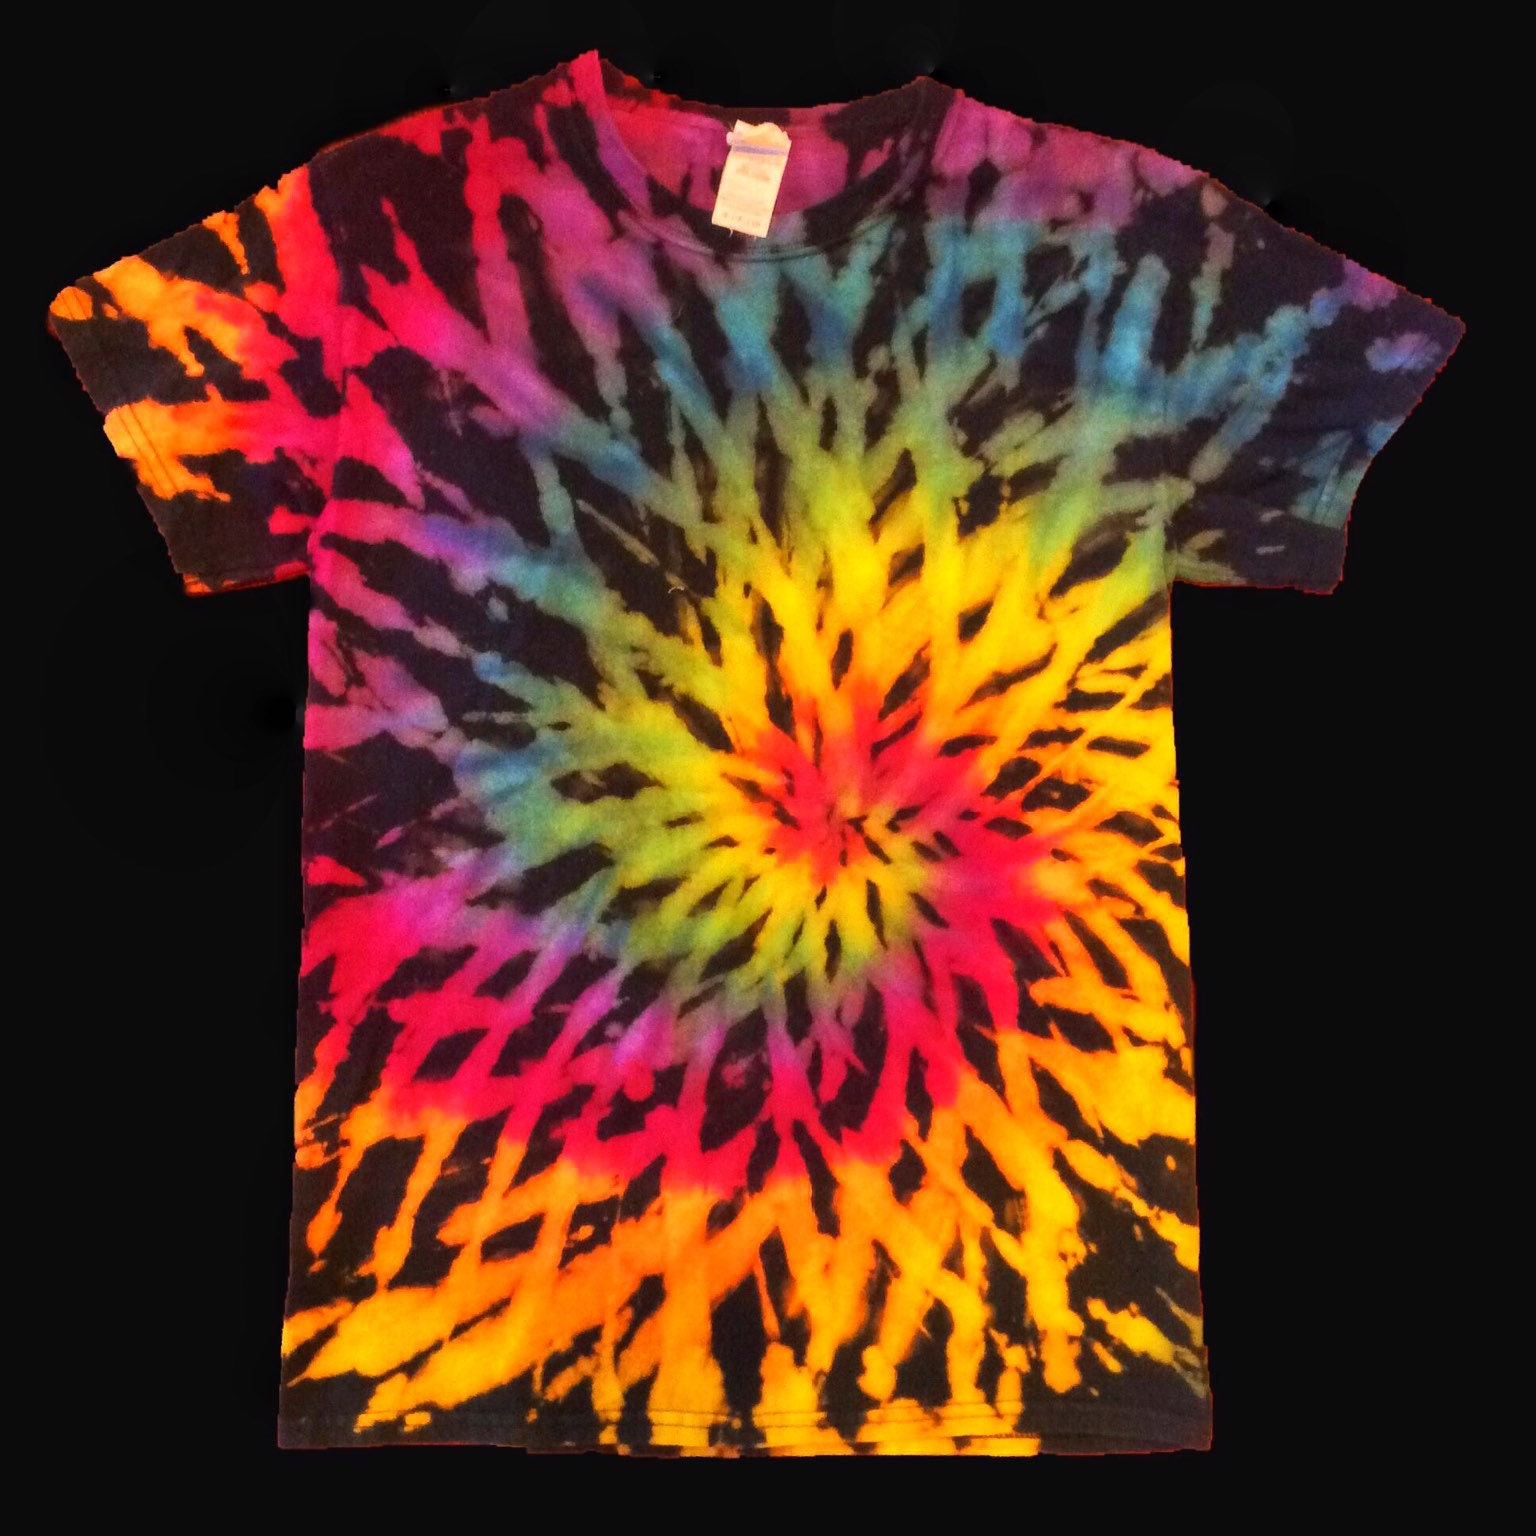 e4b169065 Tie Dye Shirts Wholesale Florida – EDGE Engineering and Consulting ...